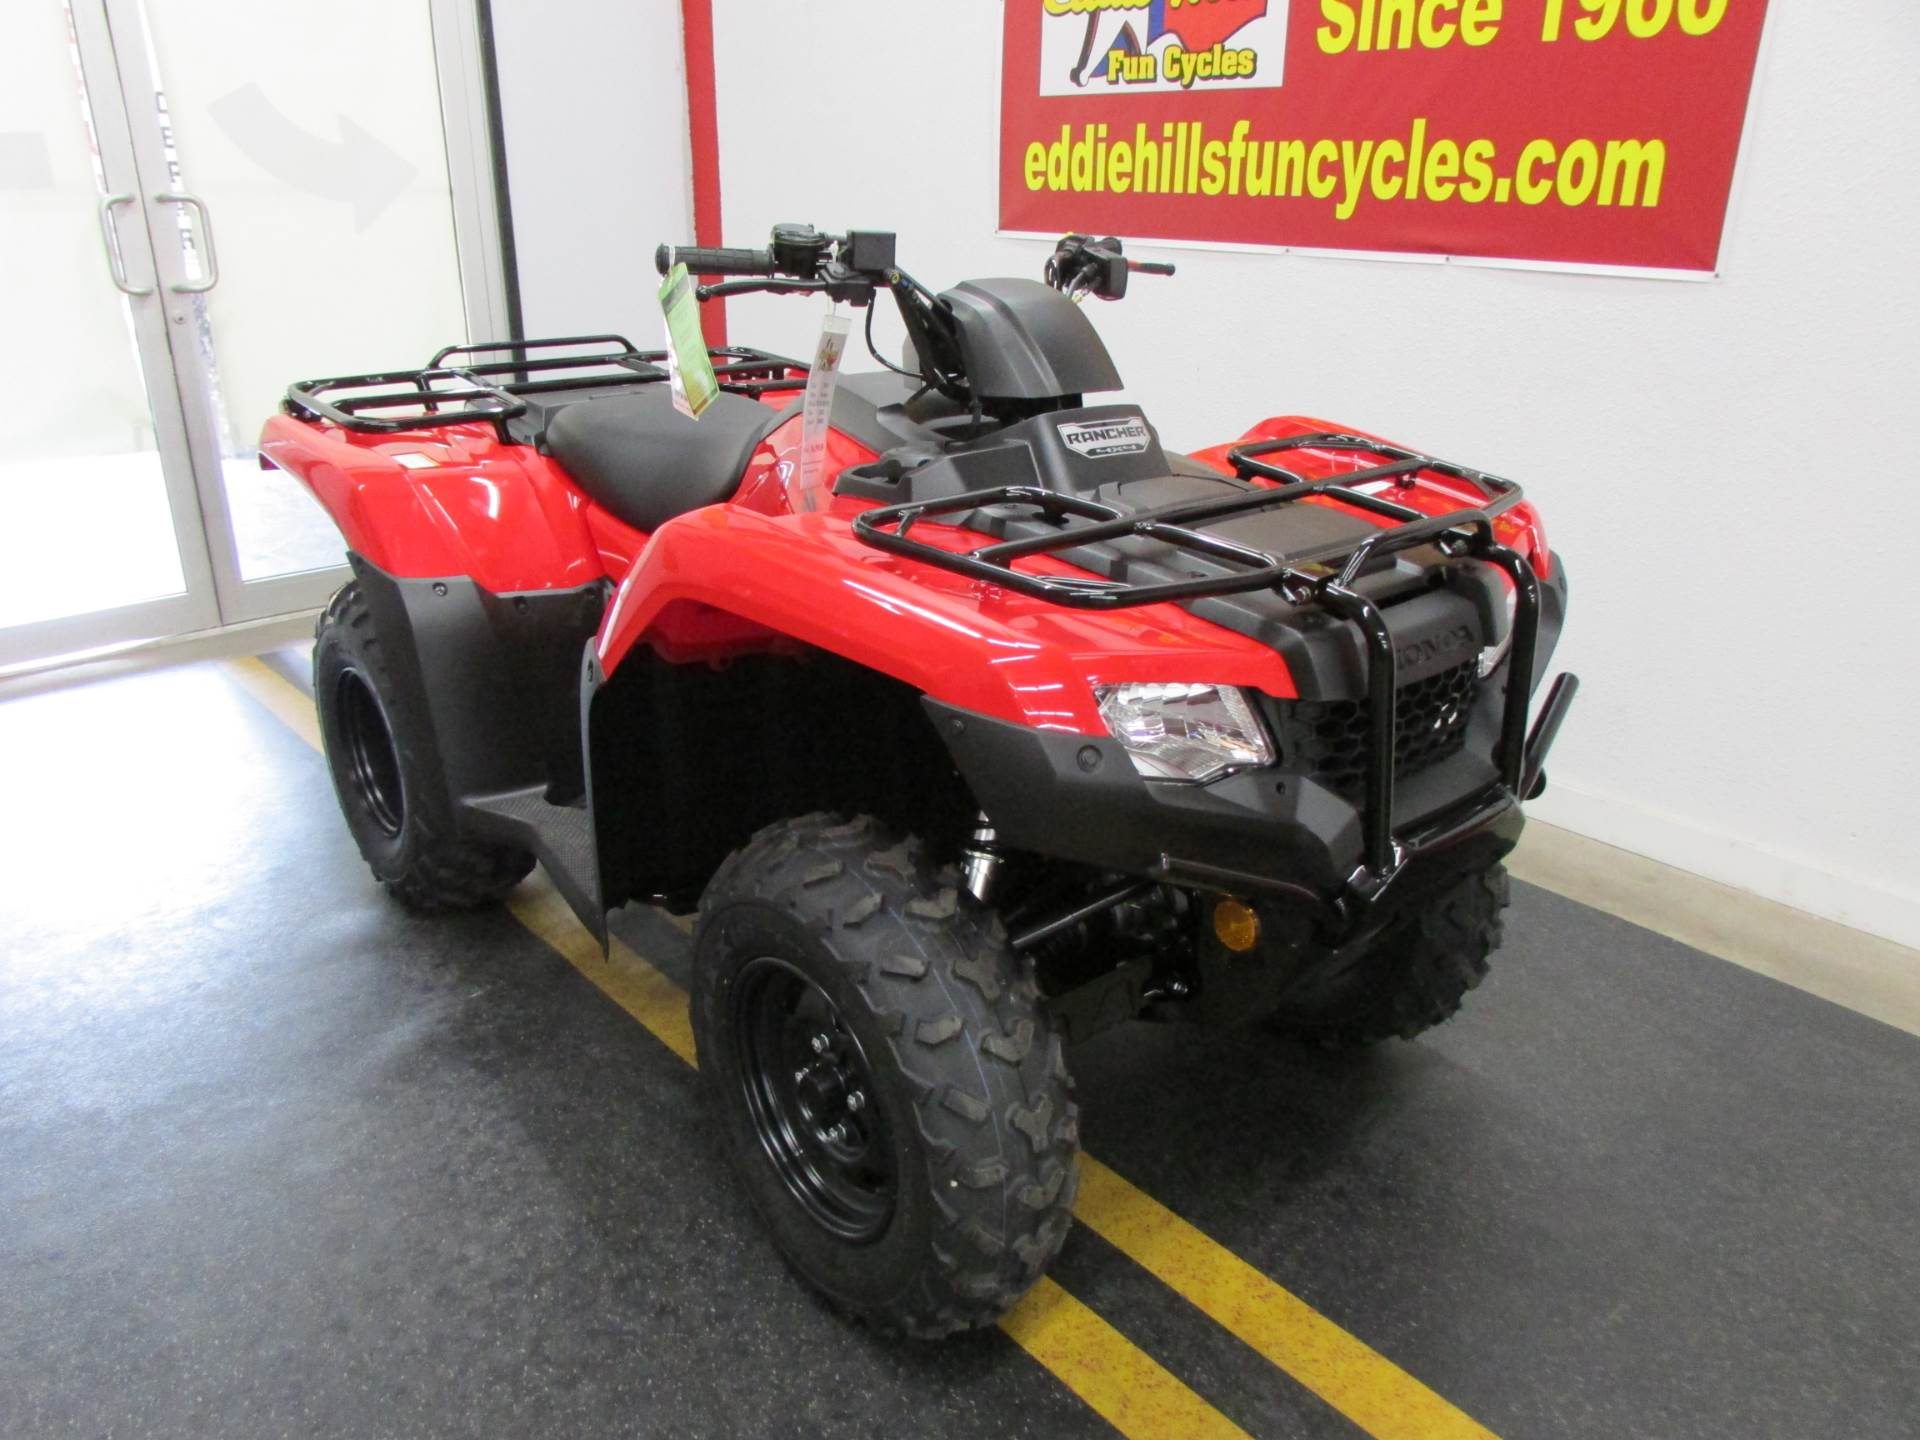 2019 Honda TRX420FM1 in Wichita Falls, Texas - Photo 2